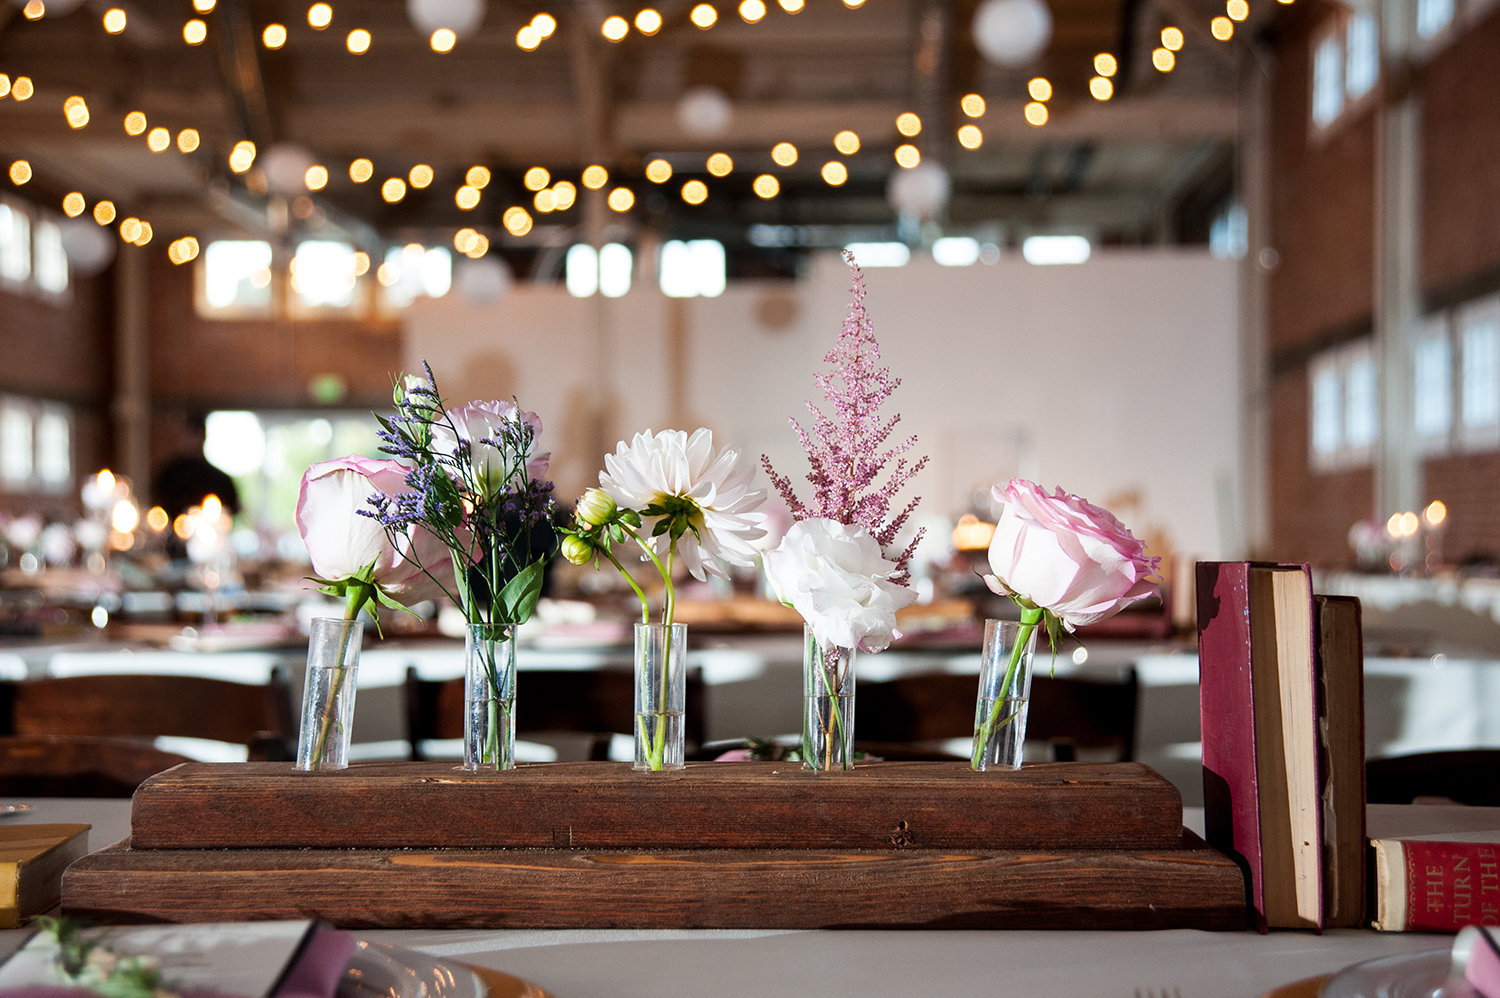 Unique table centerpieces at Brick Warehouse in San Diego | LGBTQ Wedding Decor